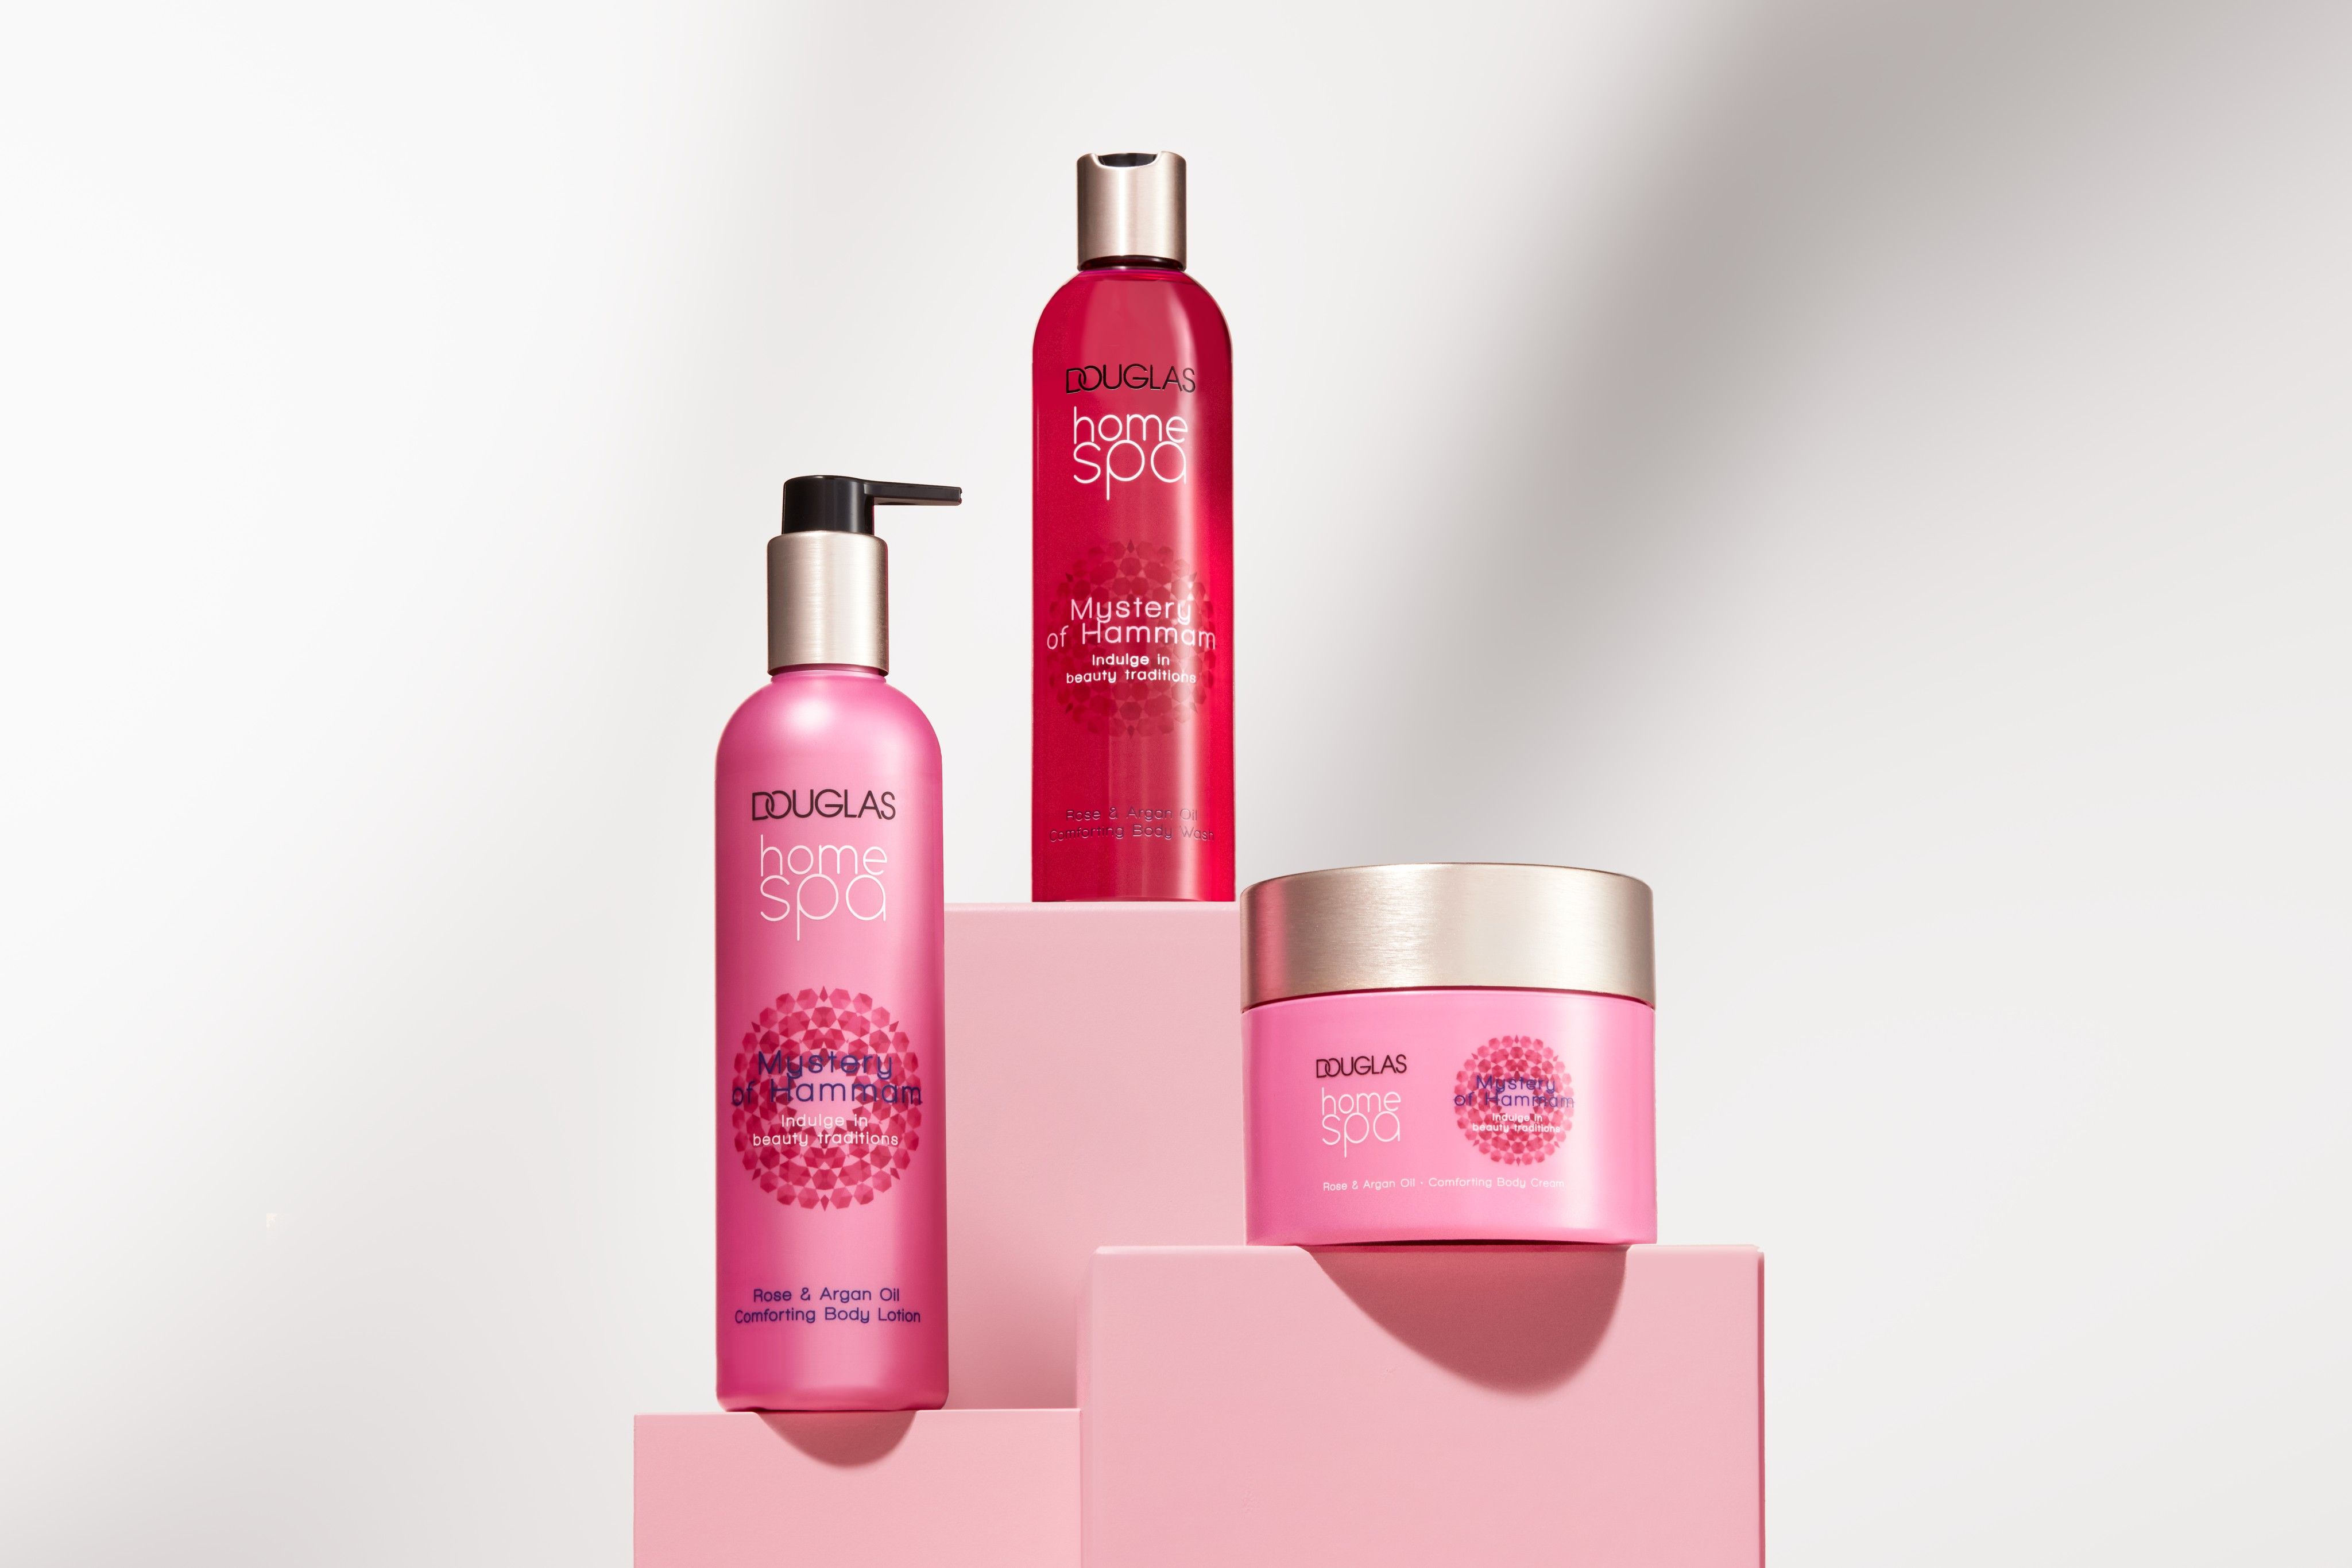 Skincare-product-douglas-collection-home-spa-pink-cubes-white-room-horizontal-unlimited-Web-Rendition